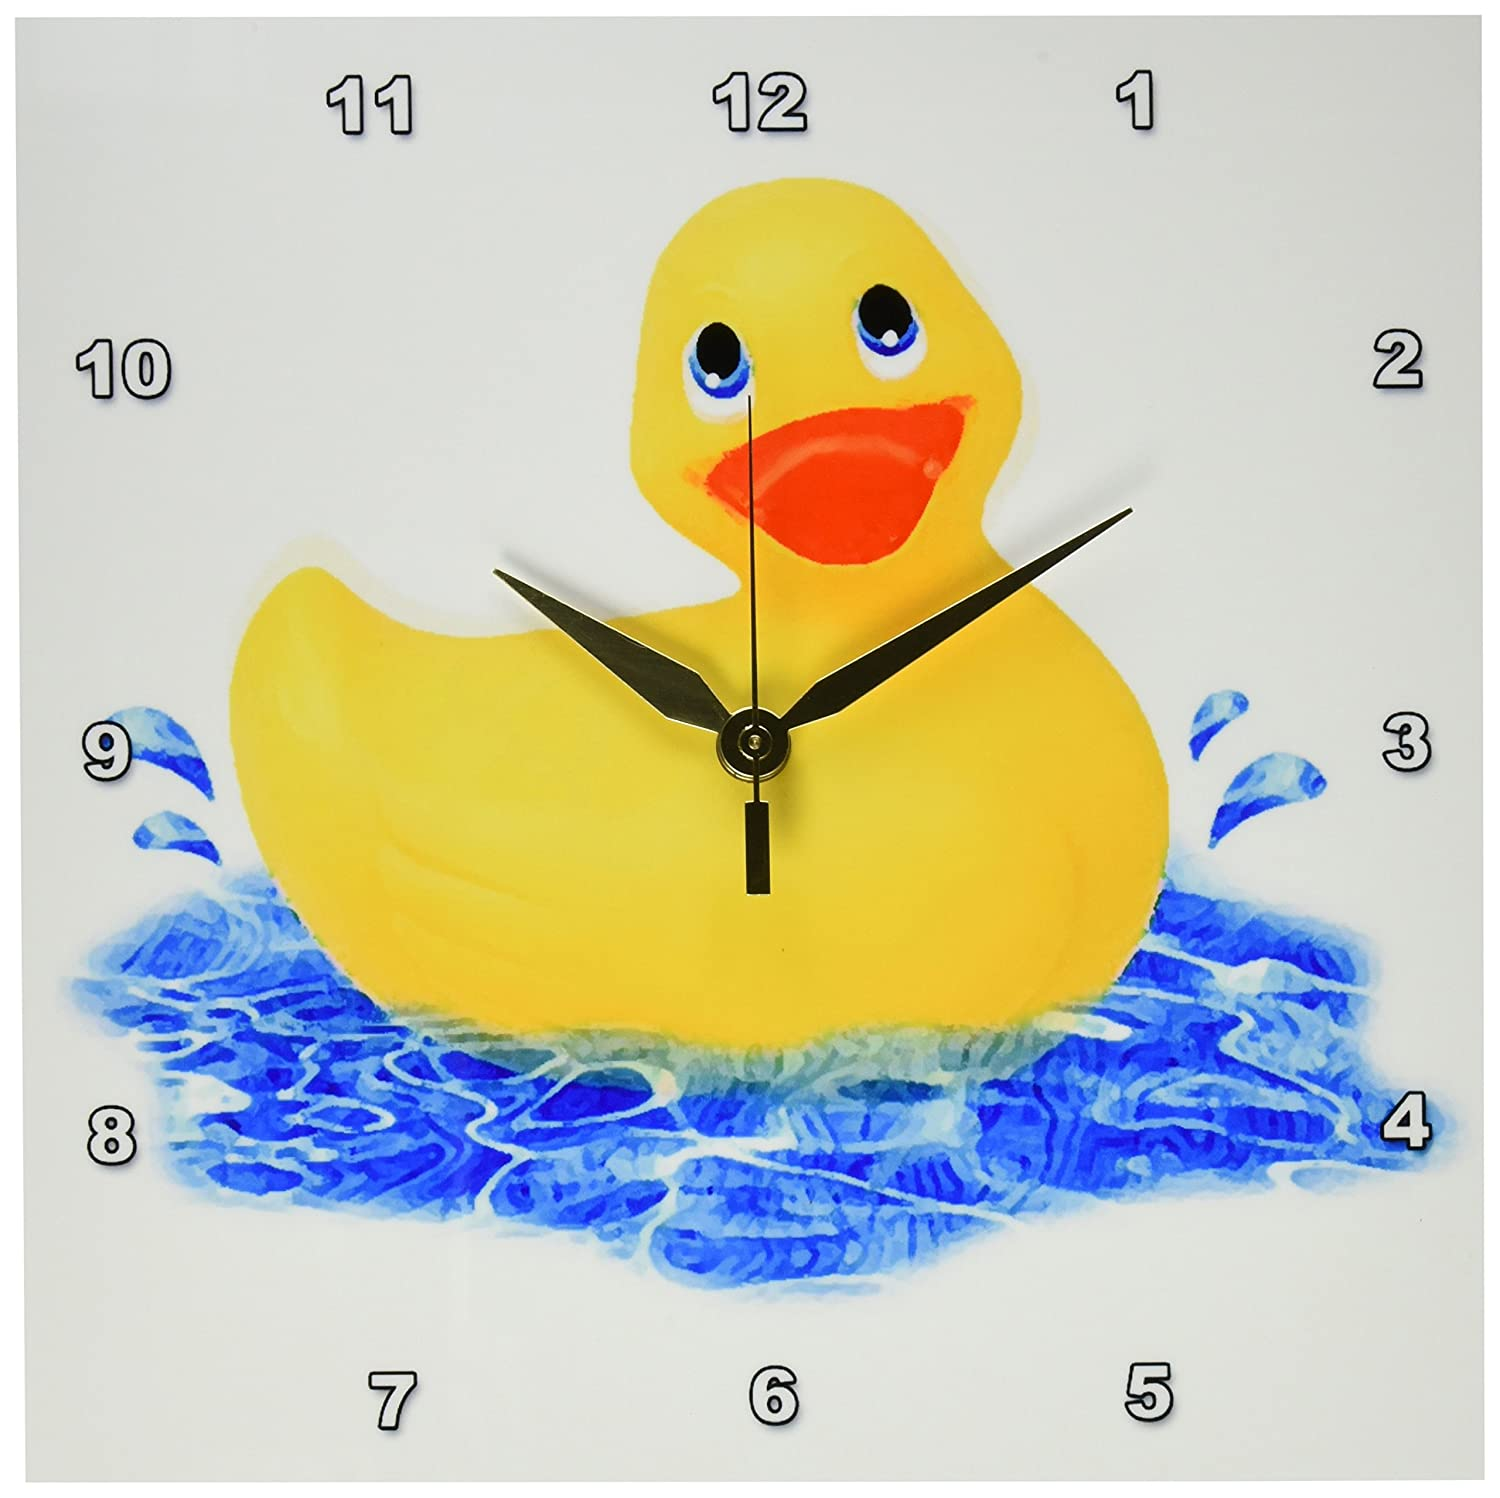 Amazon.com: 3drose Rubber Duck Wall Clock, 10 by 10-Inch: Home & Kitchen